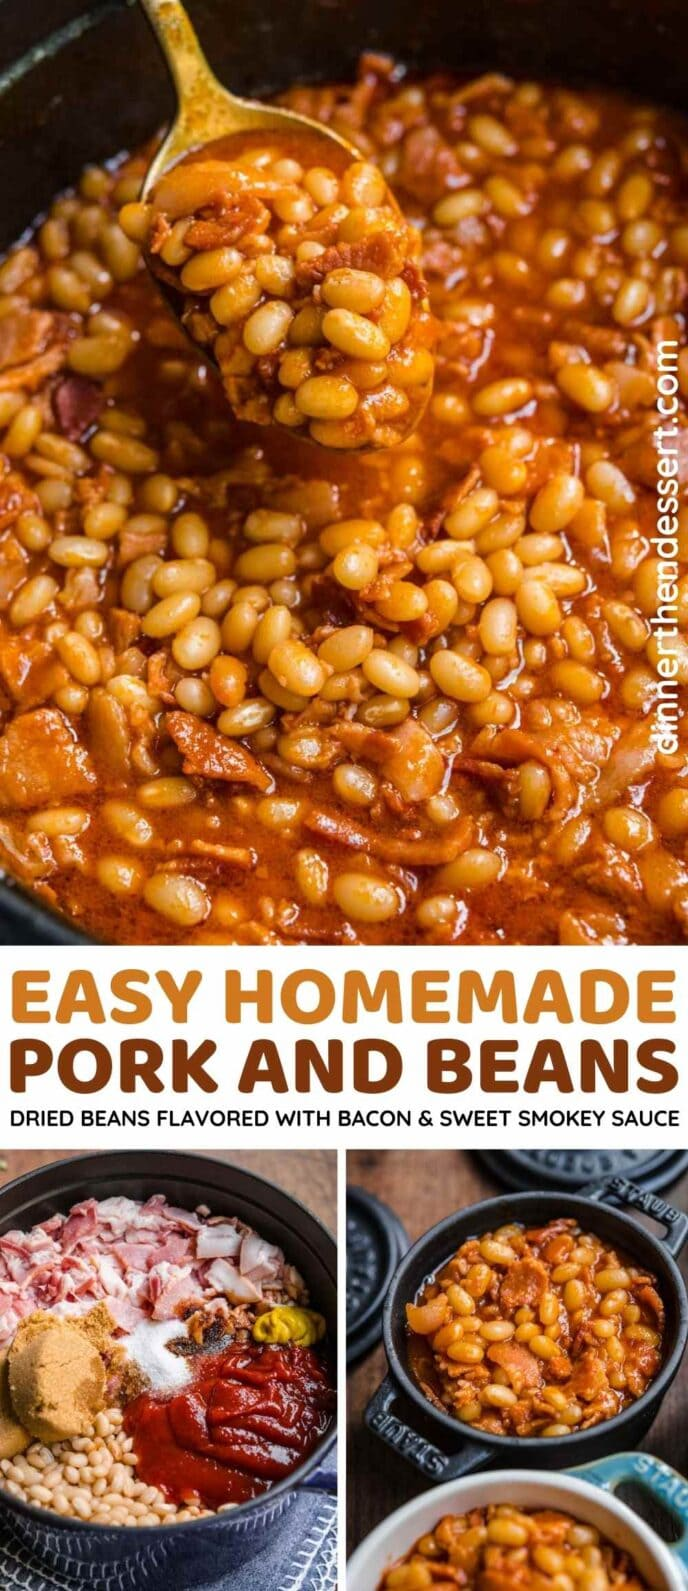 Homemade Pork and Beans collage